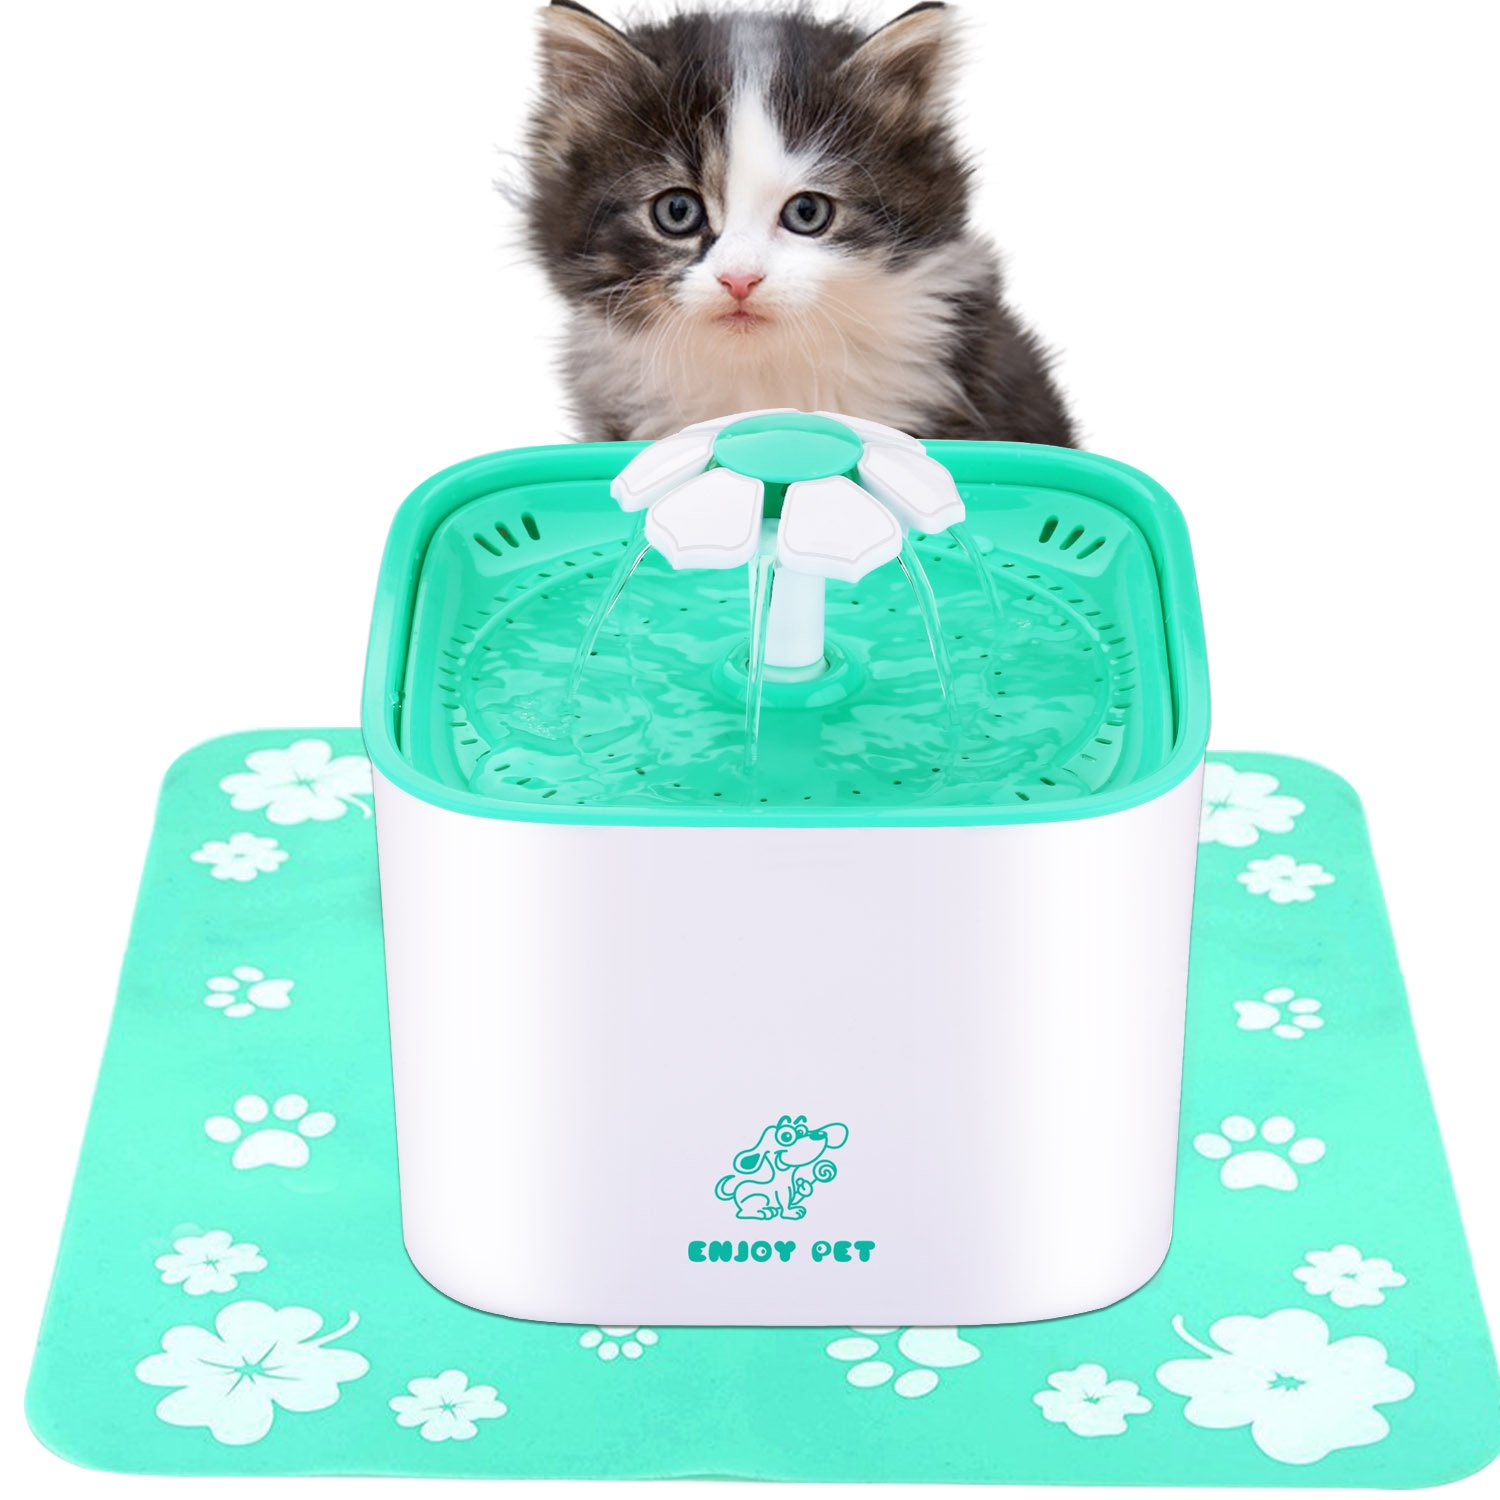 Pet Water Fountain for Cat and Dog 2L Automatic Cat Water Dispenser with Filter and Silicone Anti-Skid Mat, Dog and Cat Fountain with Quiet Water Pump